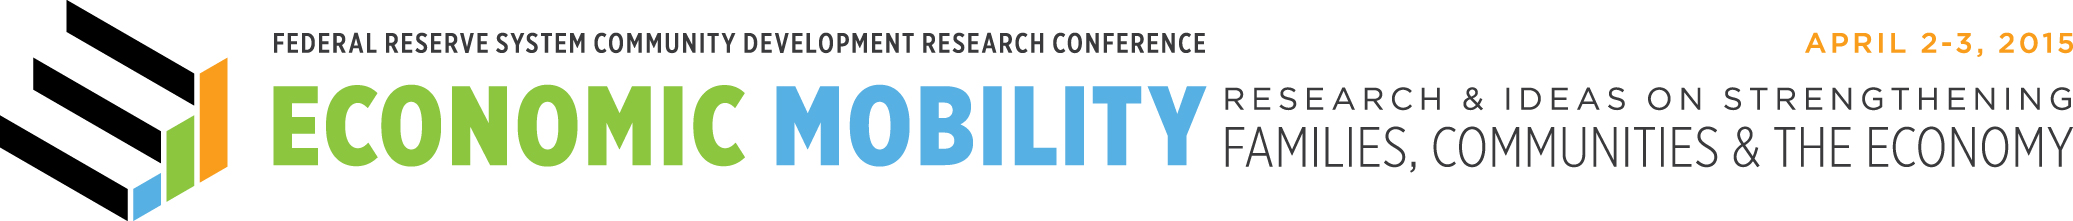 2015 Federal Reserve System Community Development Research Conference